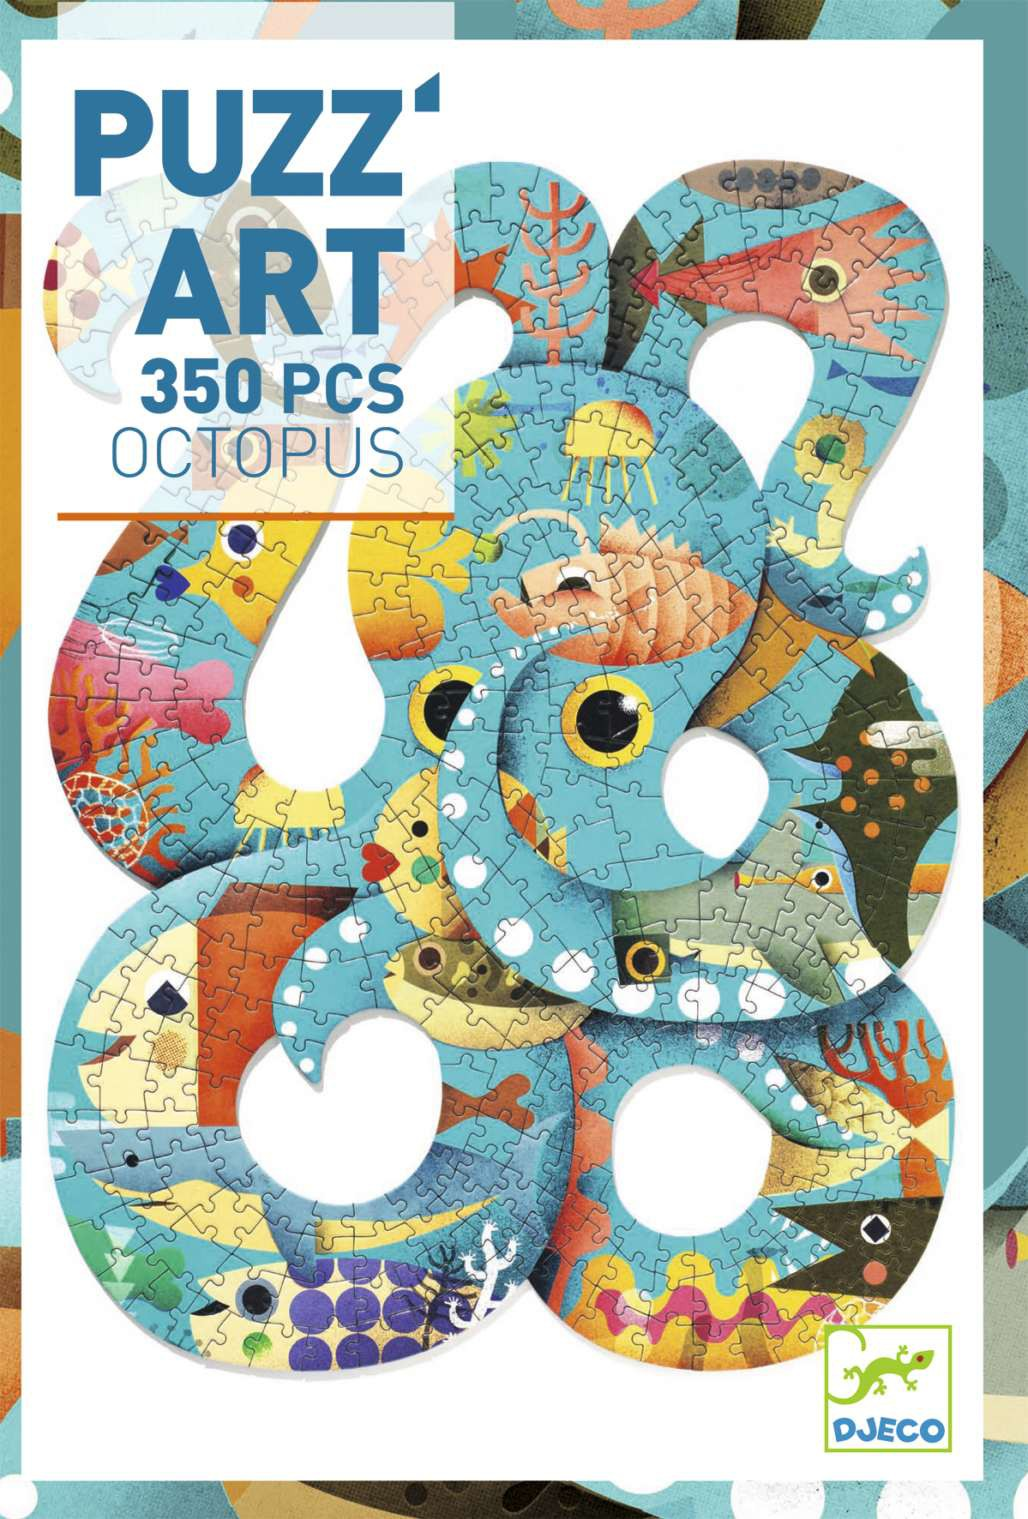 Puzle Art Octopus - 350 pcs.